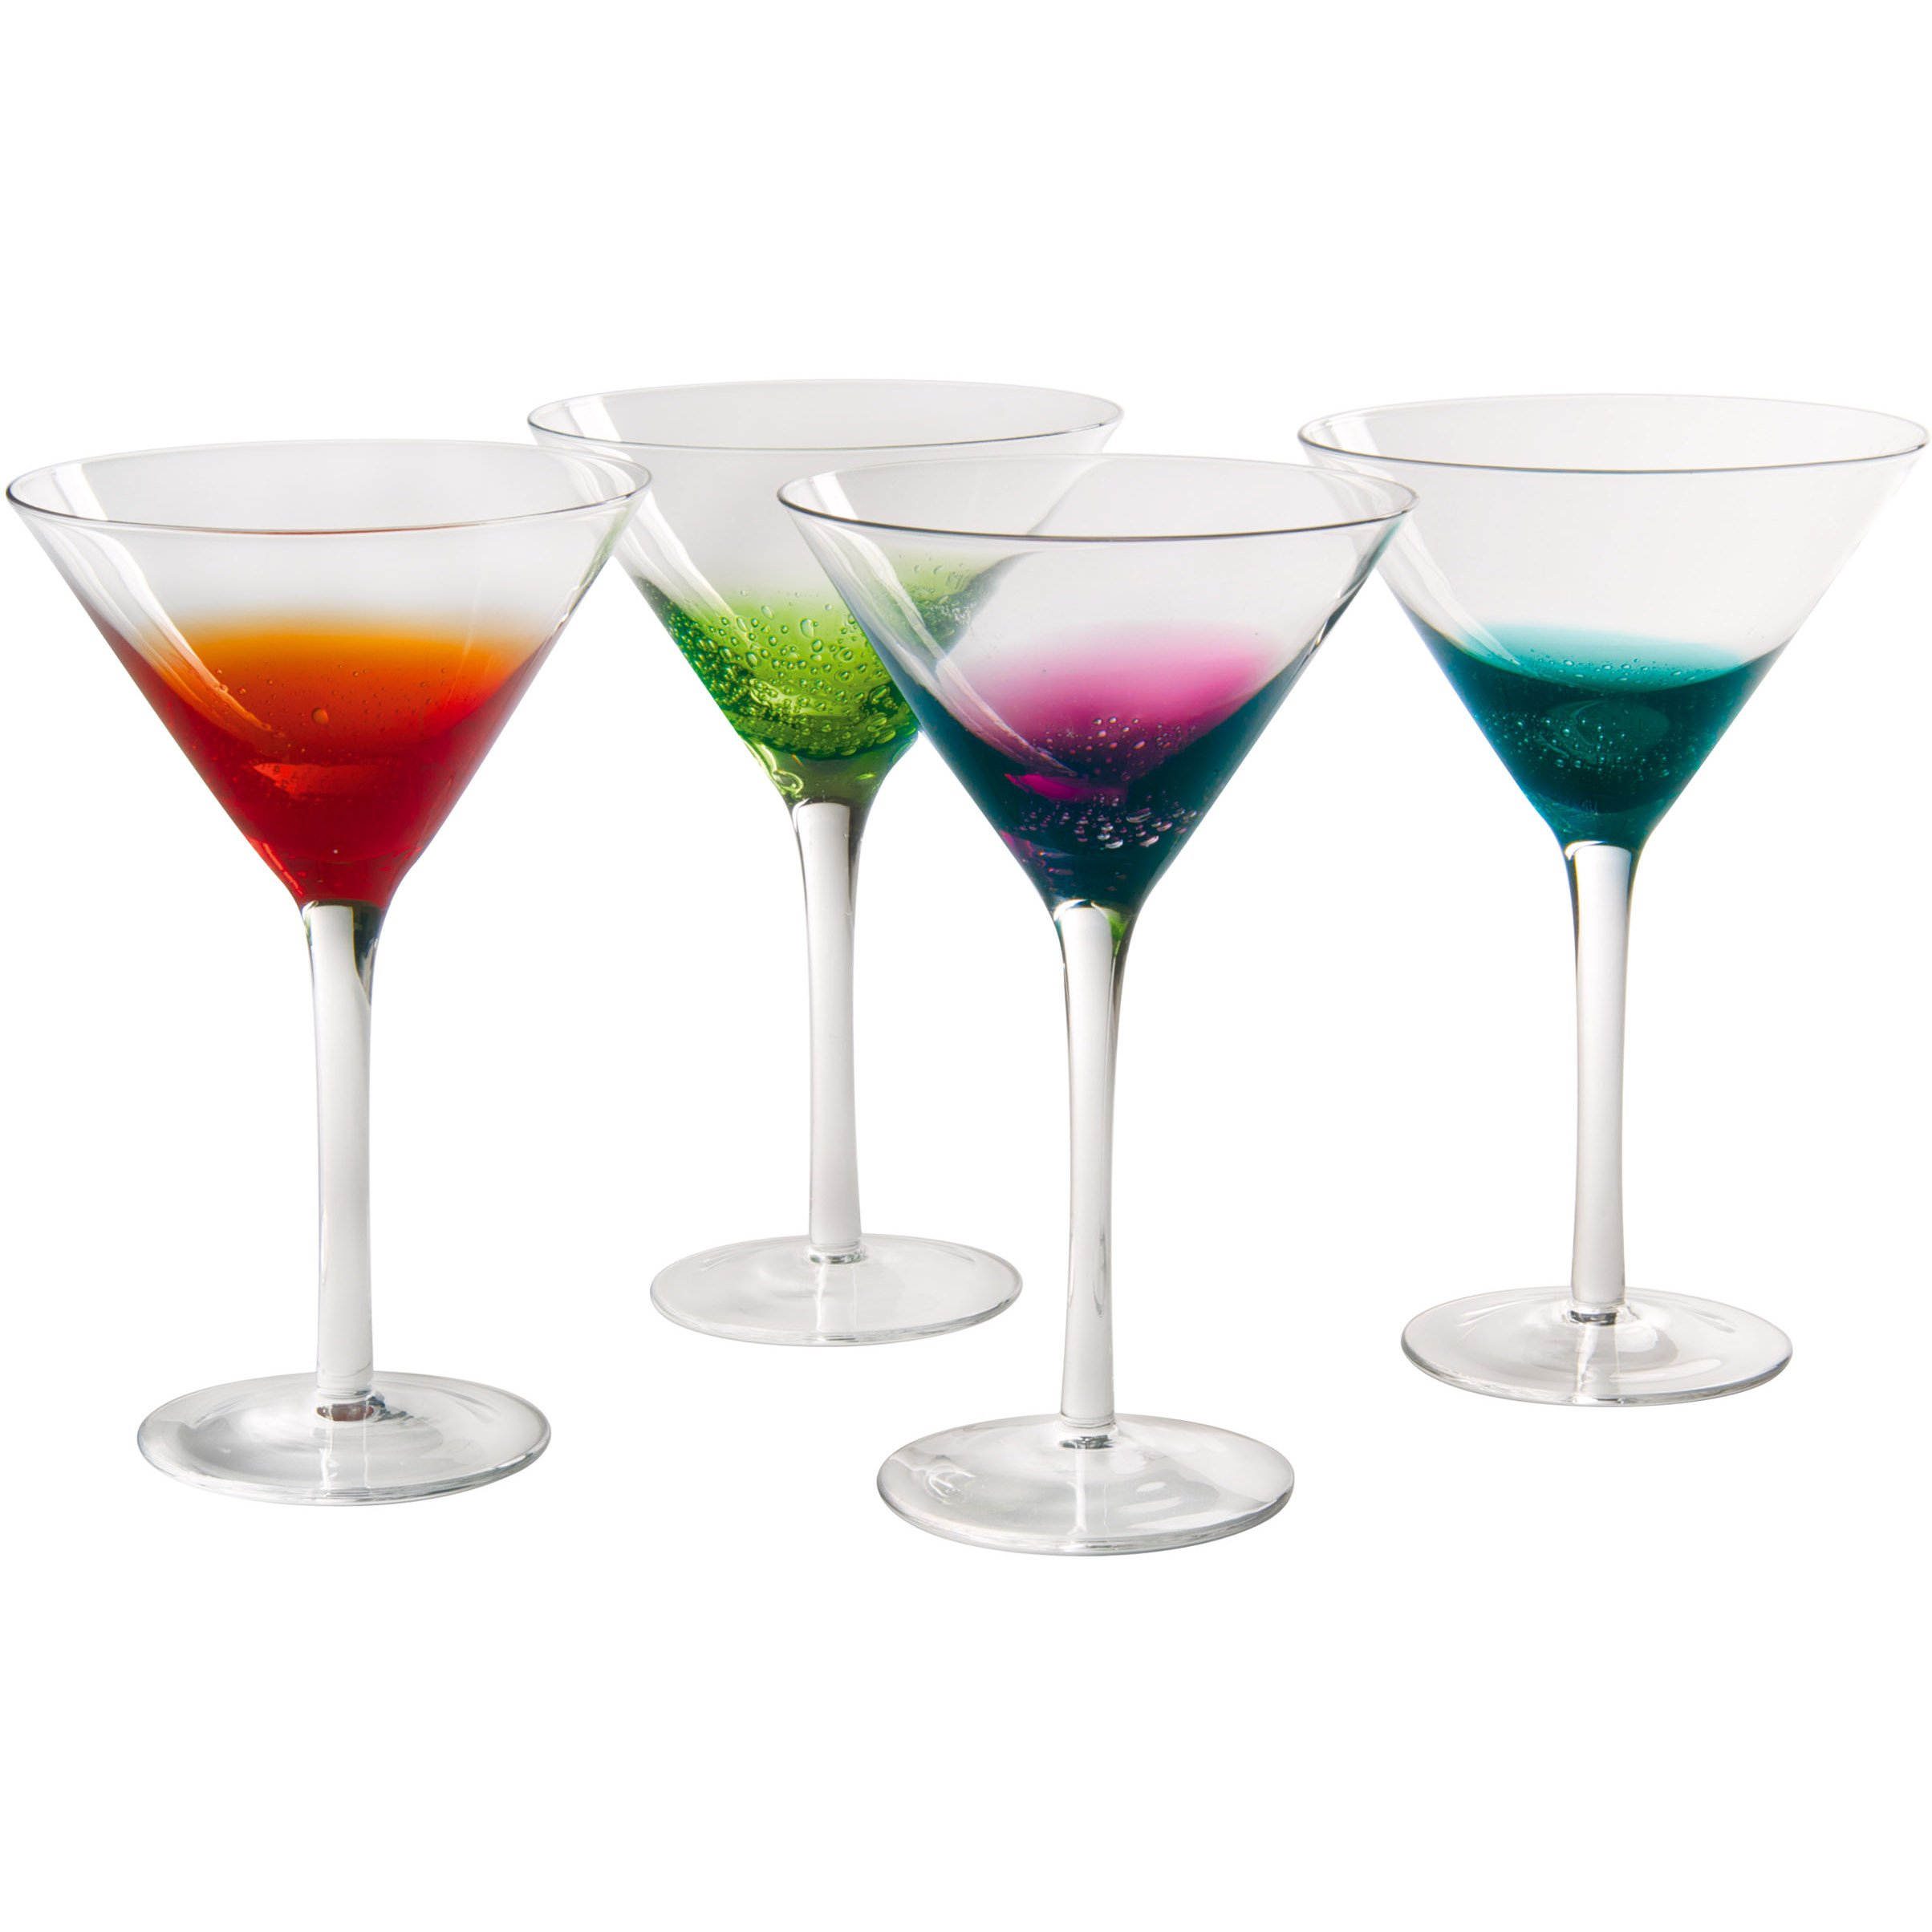 Artland Fizzy Martini, Multi-Colored, Set of 4